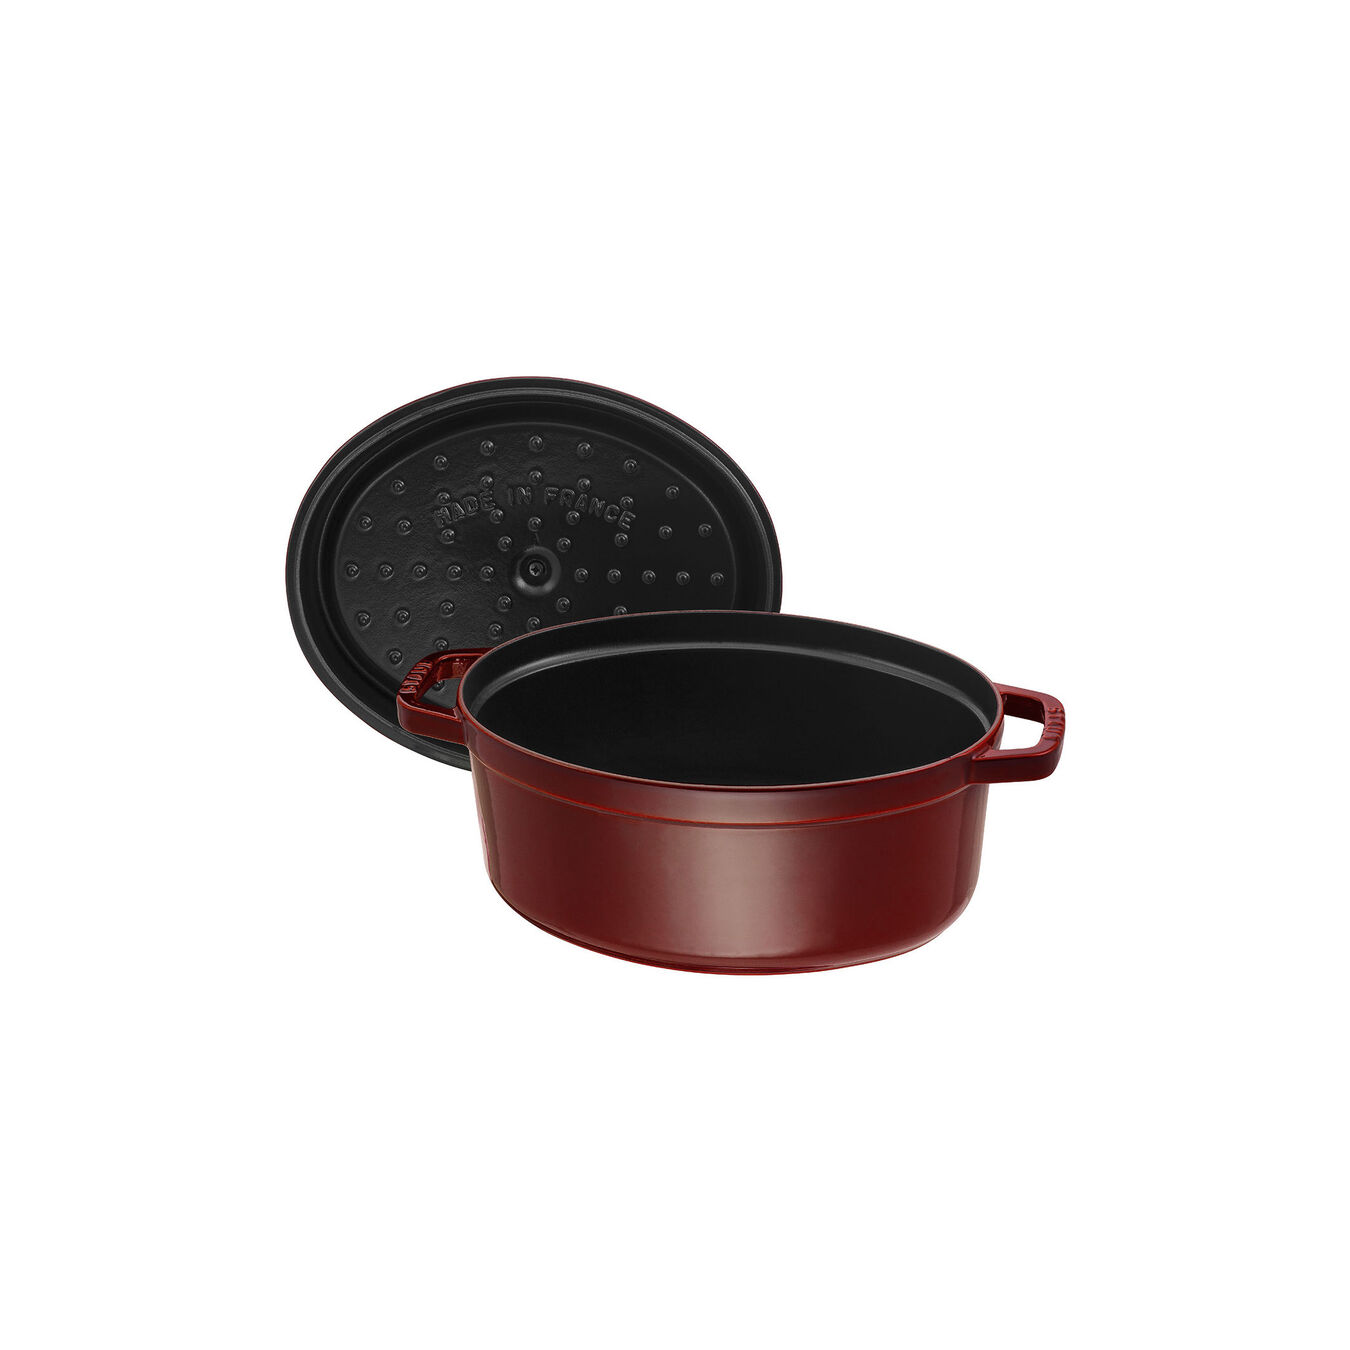 4,25 l Cast iron oval Faitout, Grenadine-Red,,large 5